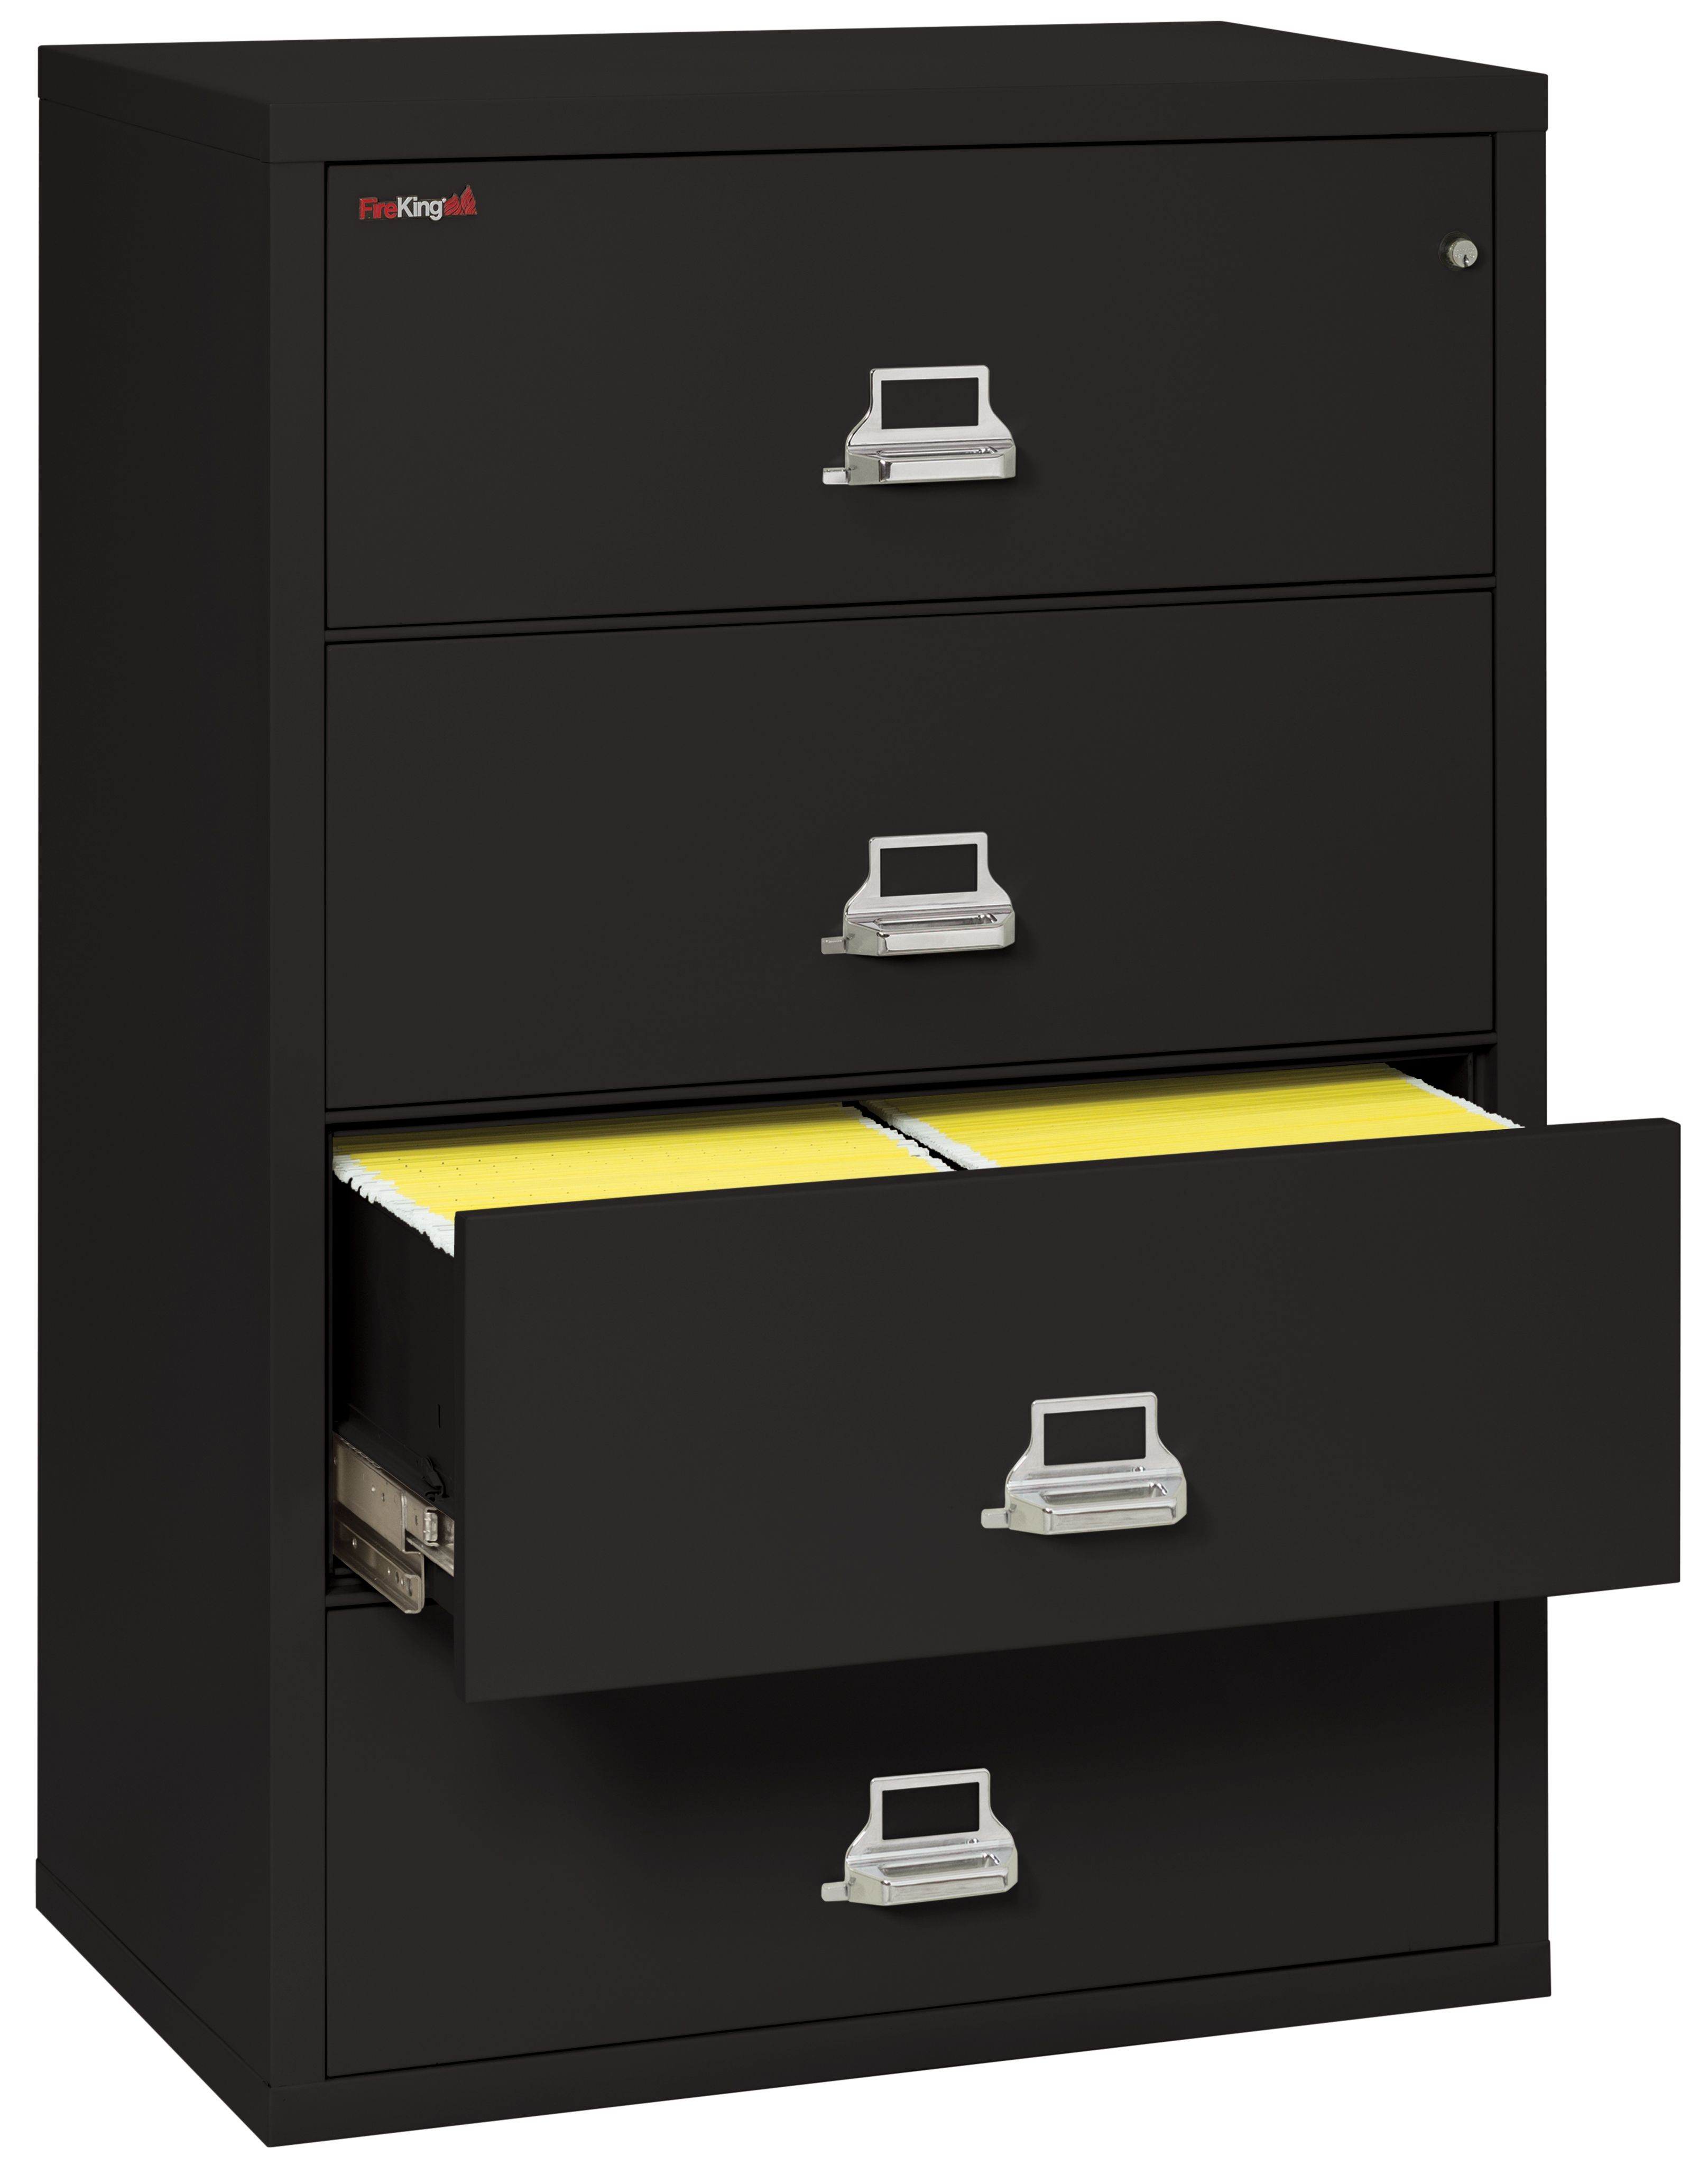 Perfect Fireproof Lateral File Cabinet 4 Drawers